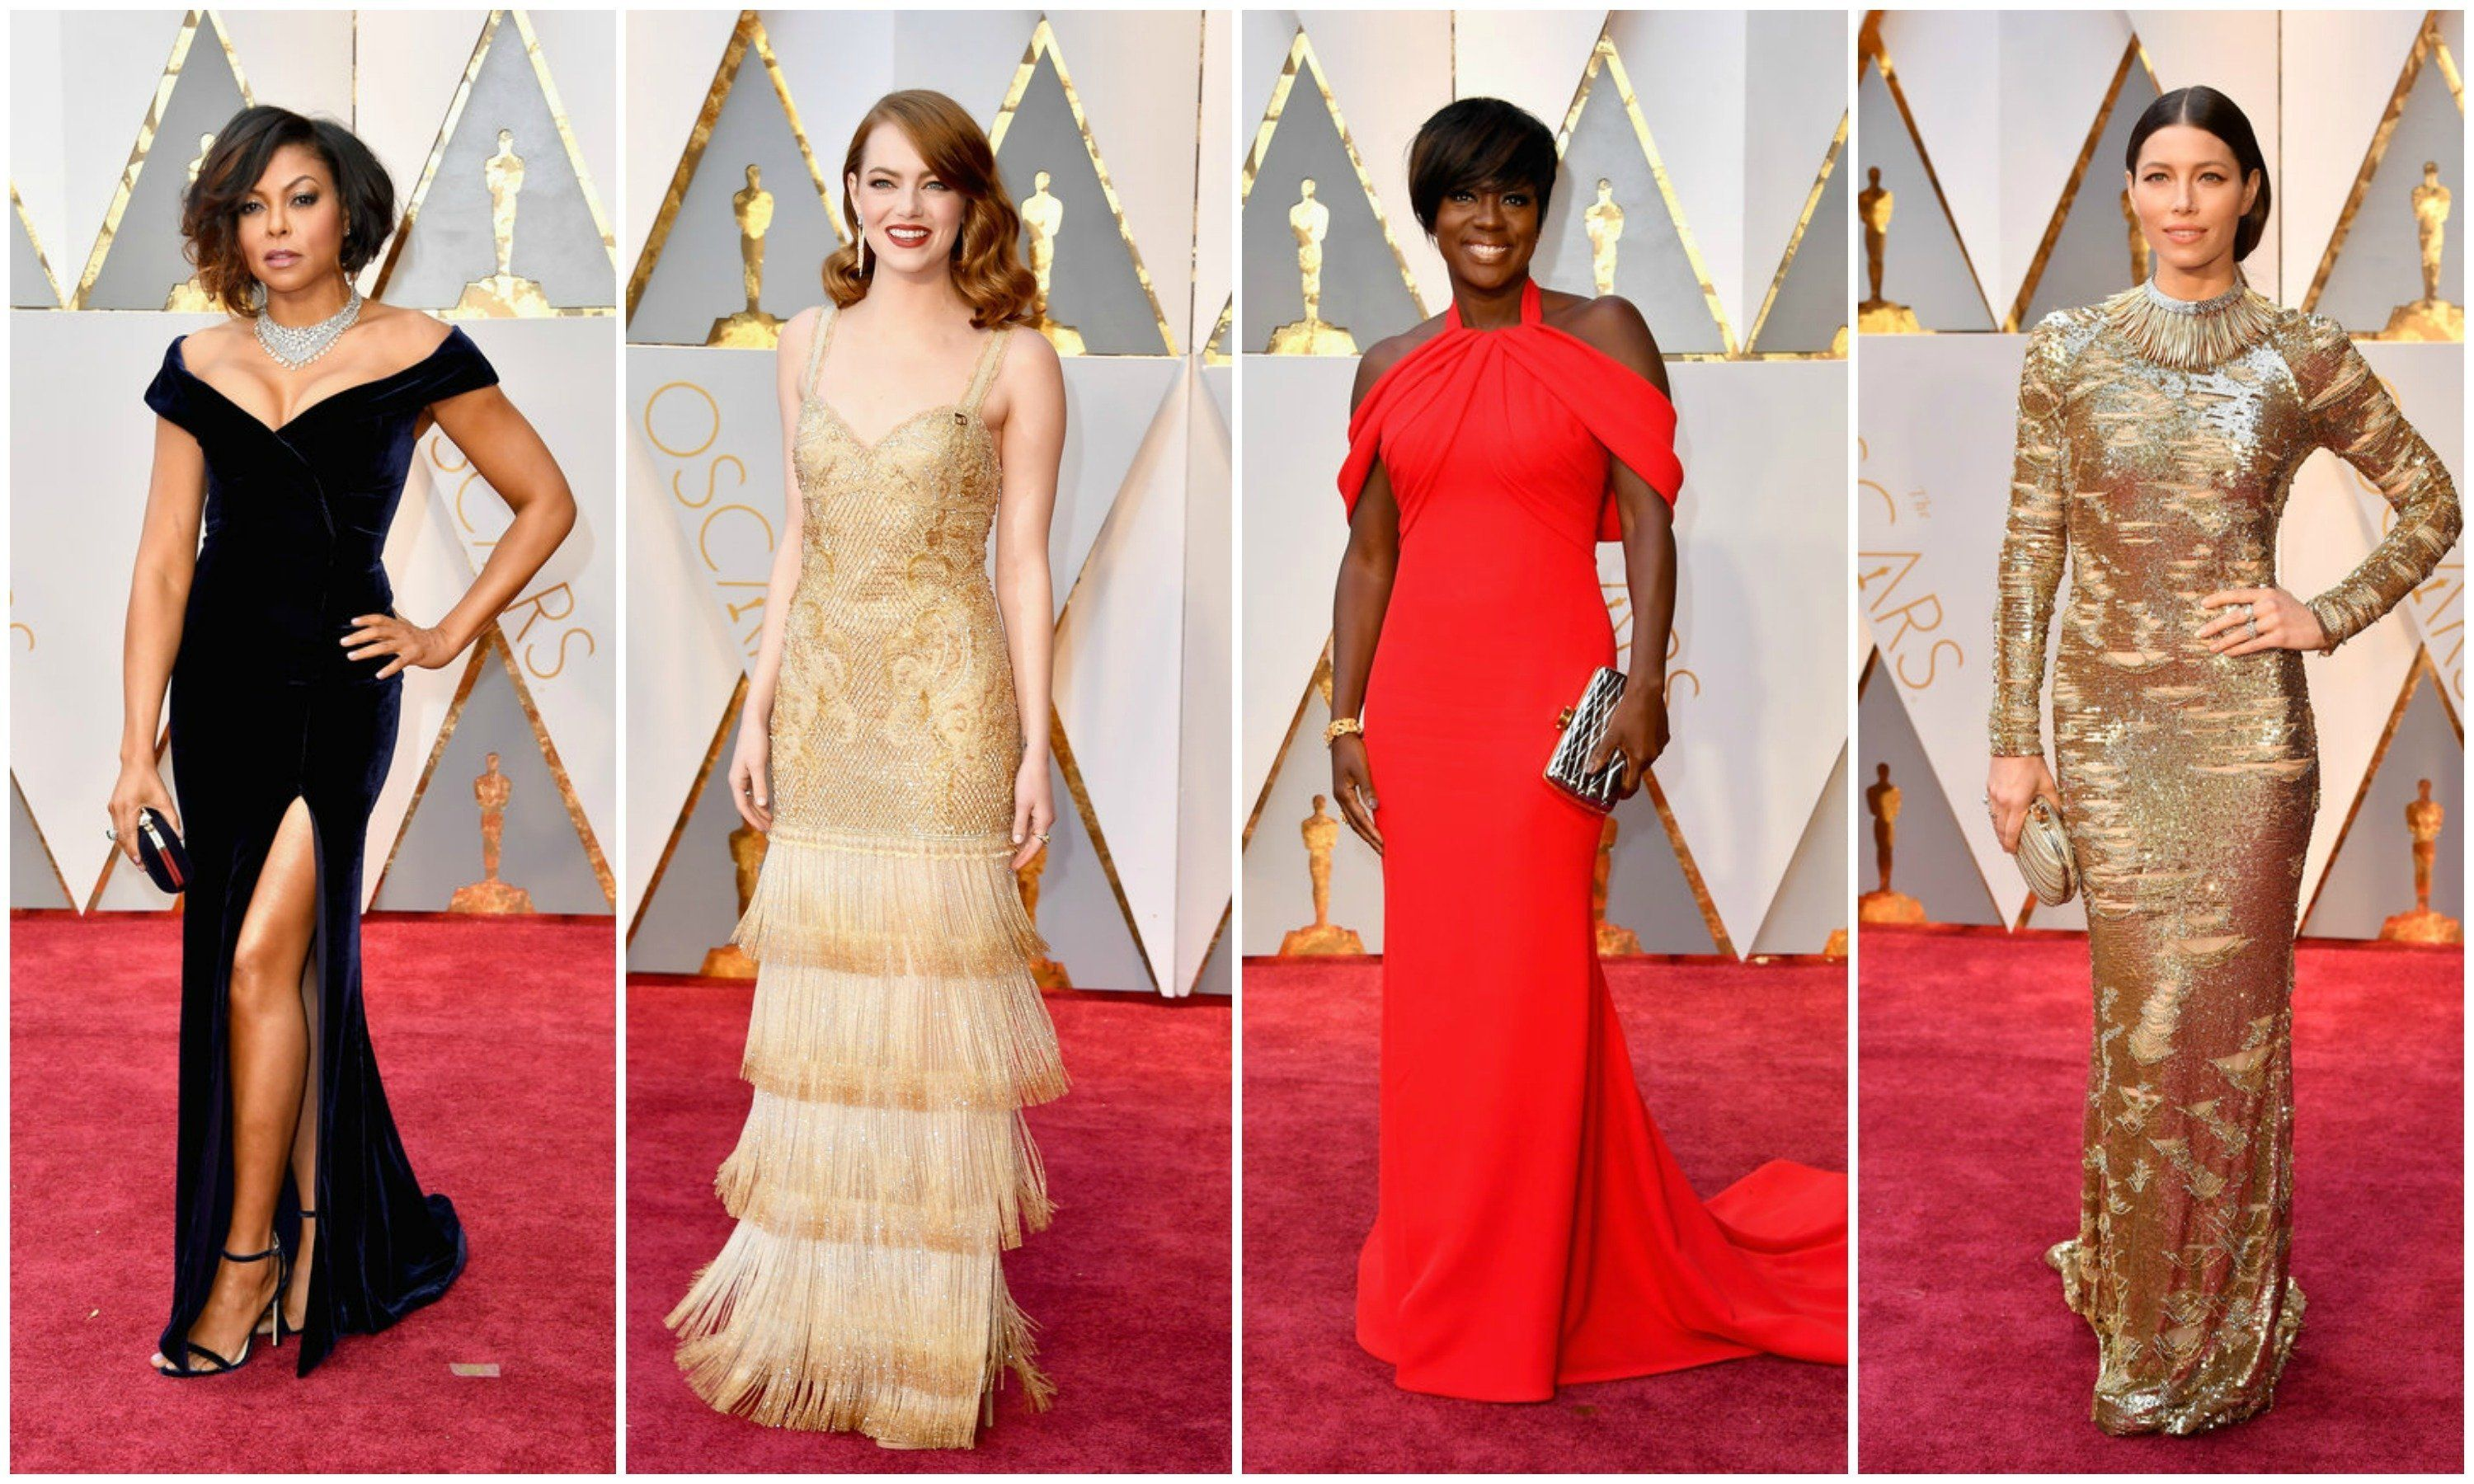 The Most Jaw-Dropping Looks From The Oscars Red